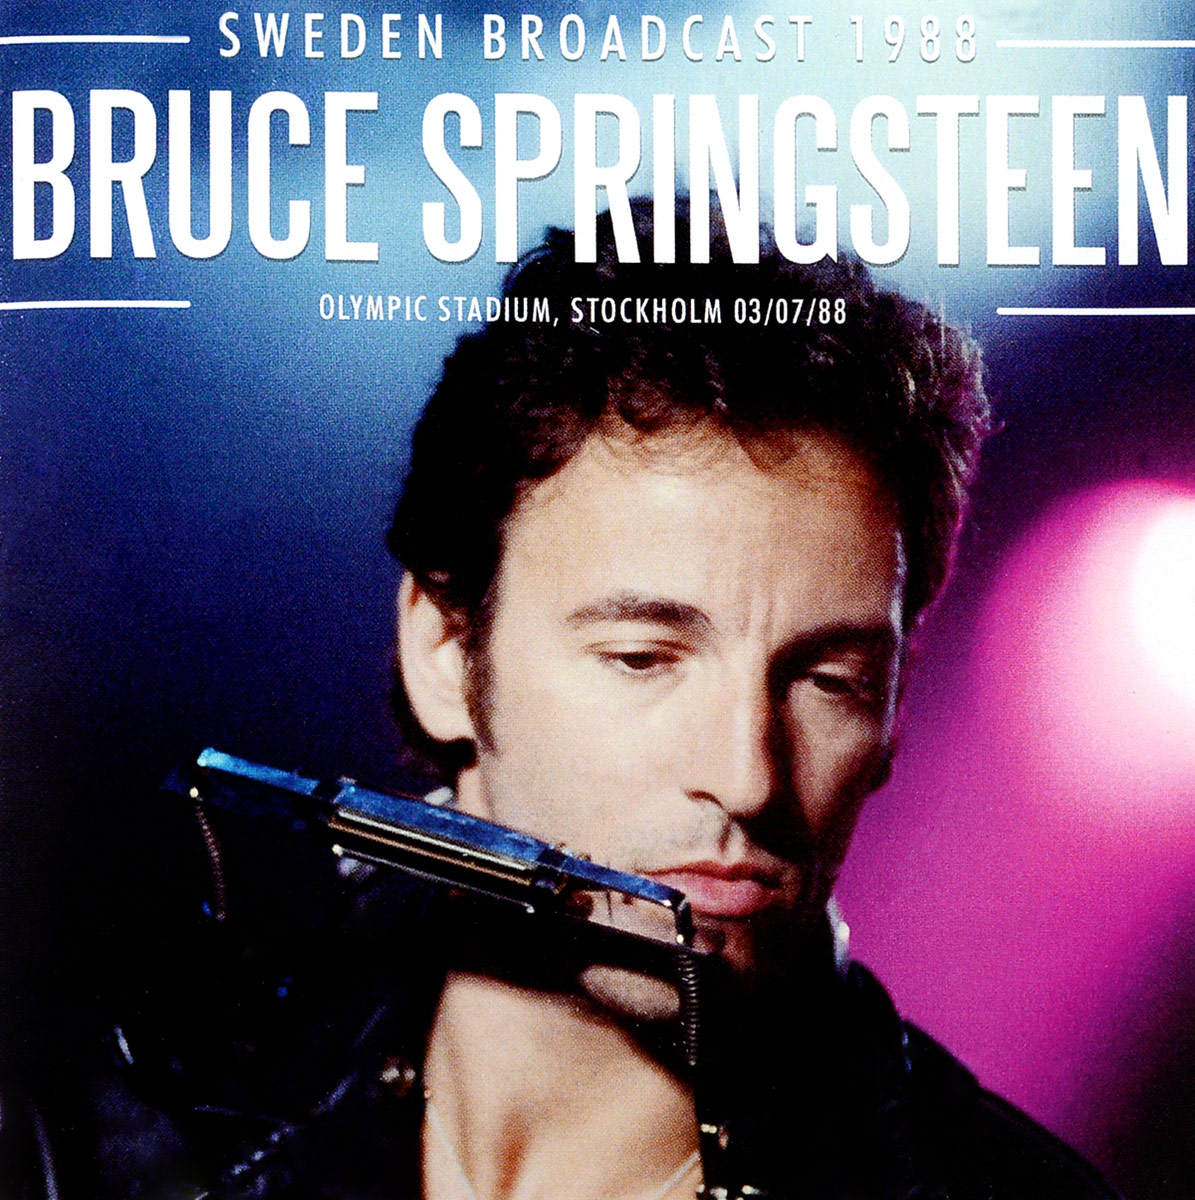 Брюс Спрингстин Bruce Springsteen. Sweden Broadcast 1988 bruce springsteen live in dublin blu ray